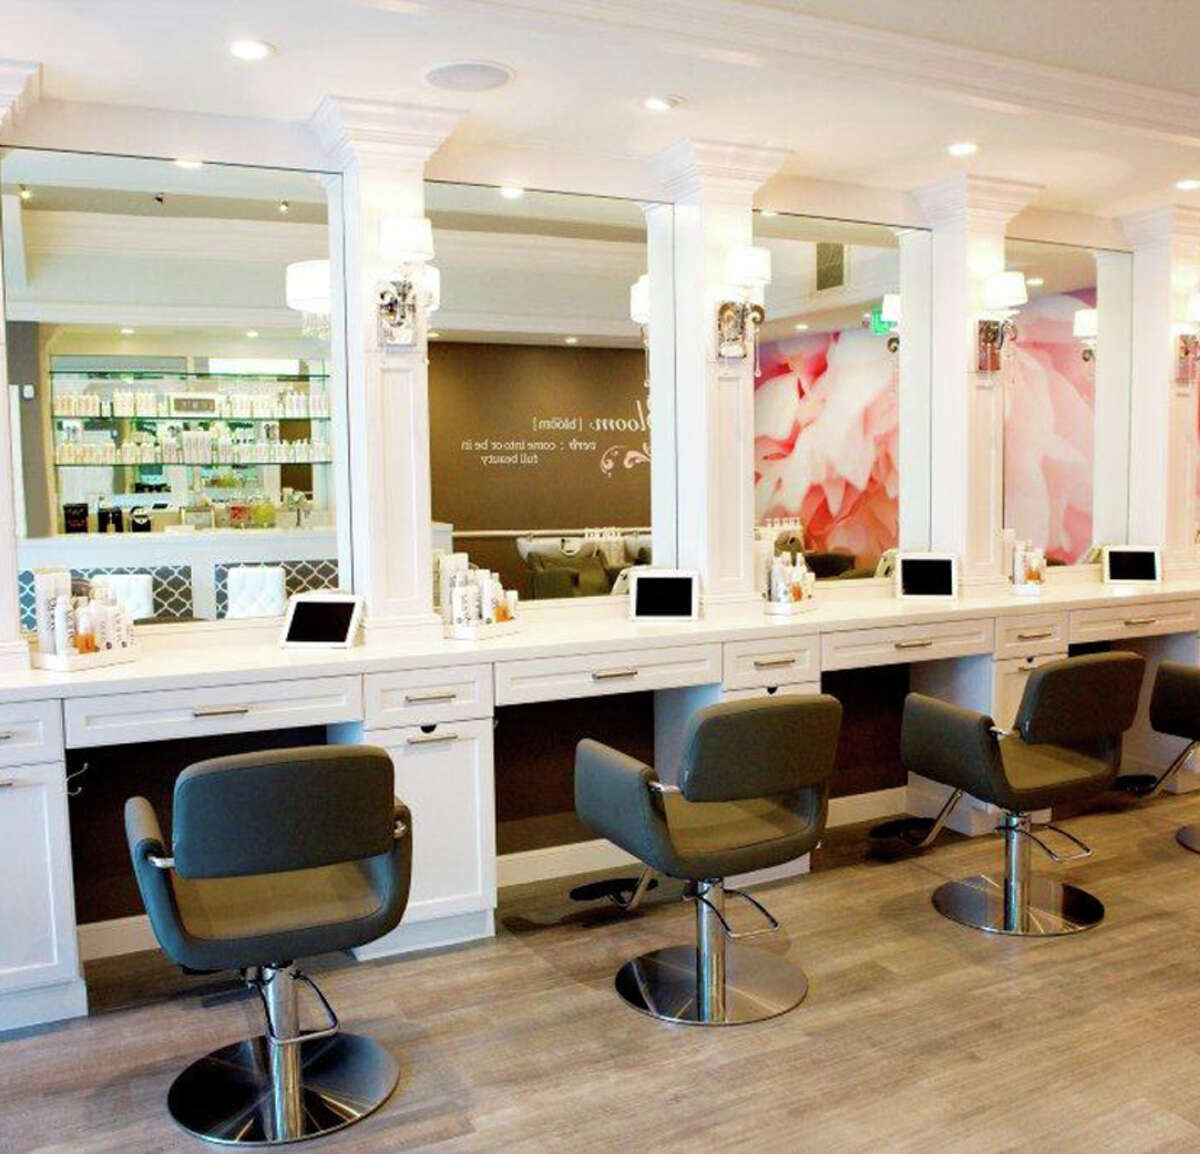 Bloom Blow Dry Bar opened in West Portal in September.